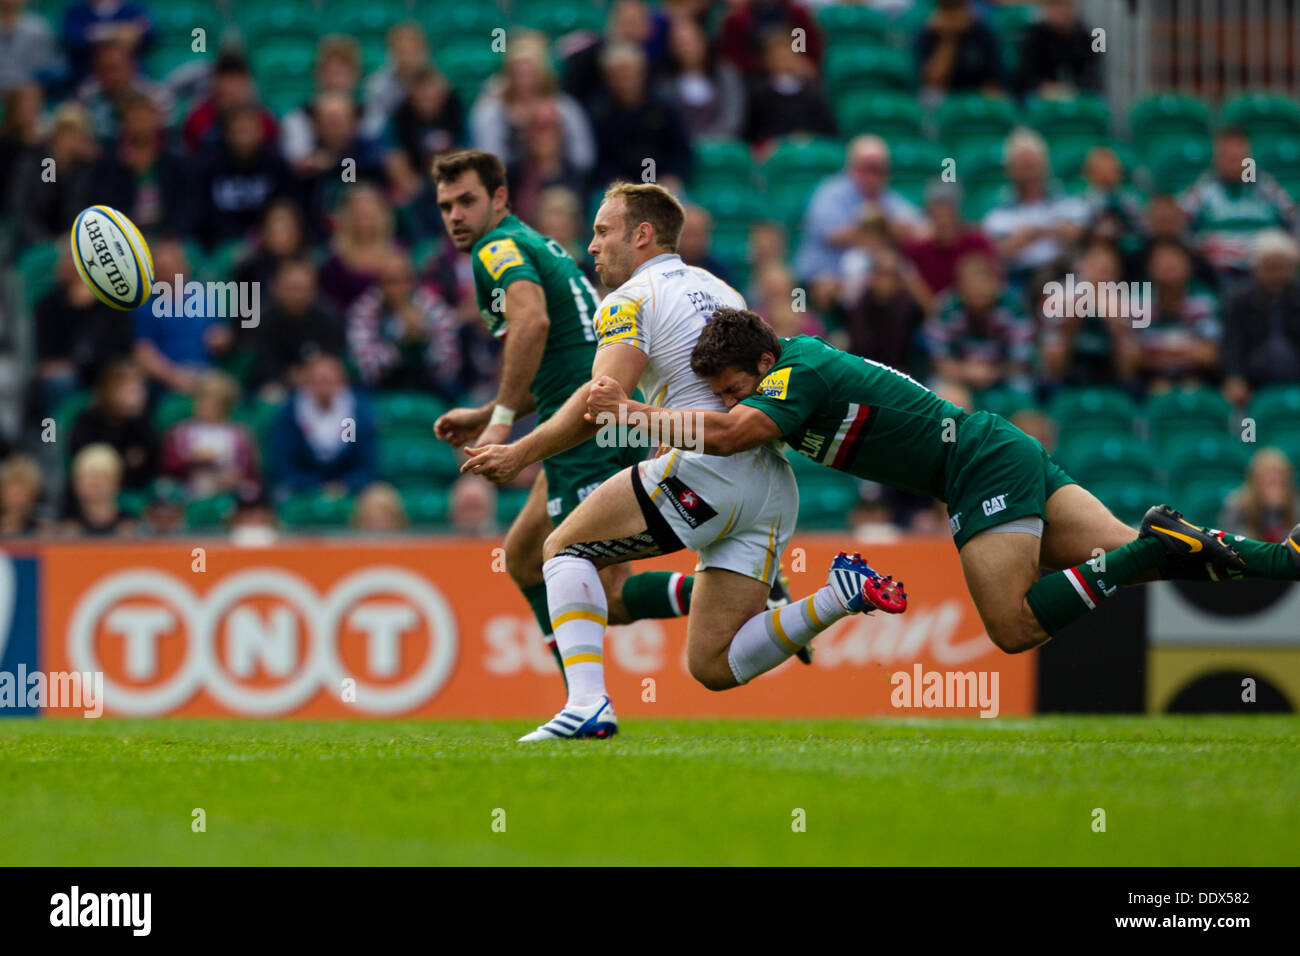 Leicester, UK. 8th Sep, 2013. Leicester's Anthony Allen makes a flying tackle. Action from the Aviva Premiership - Stock Image